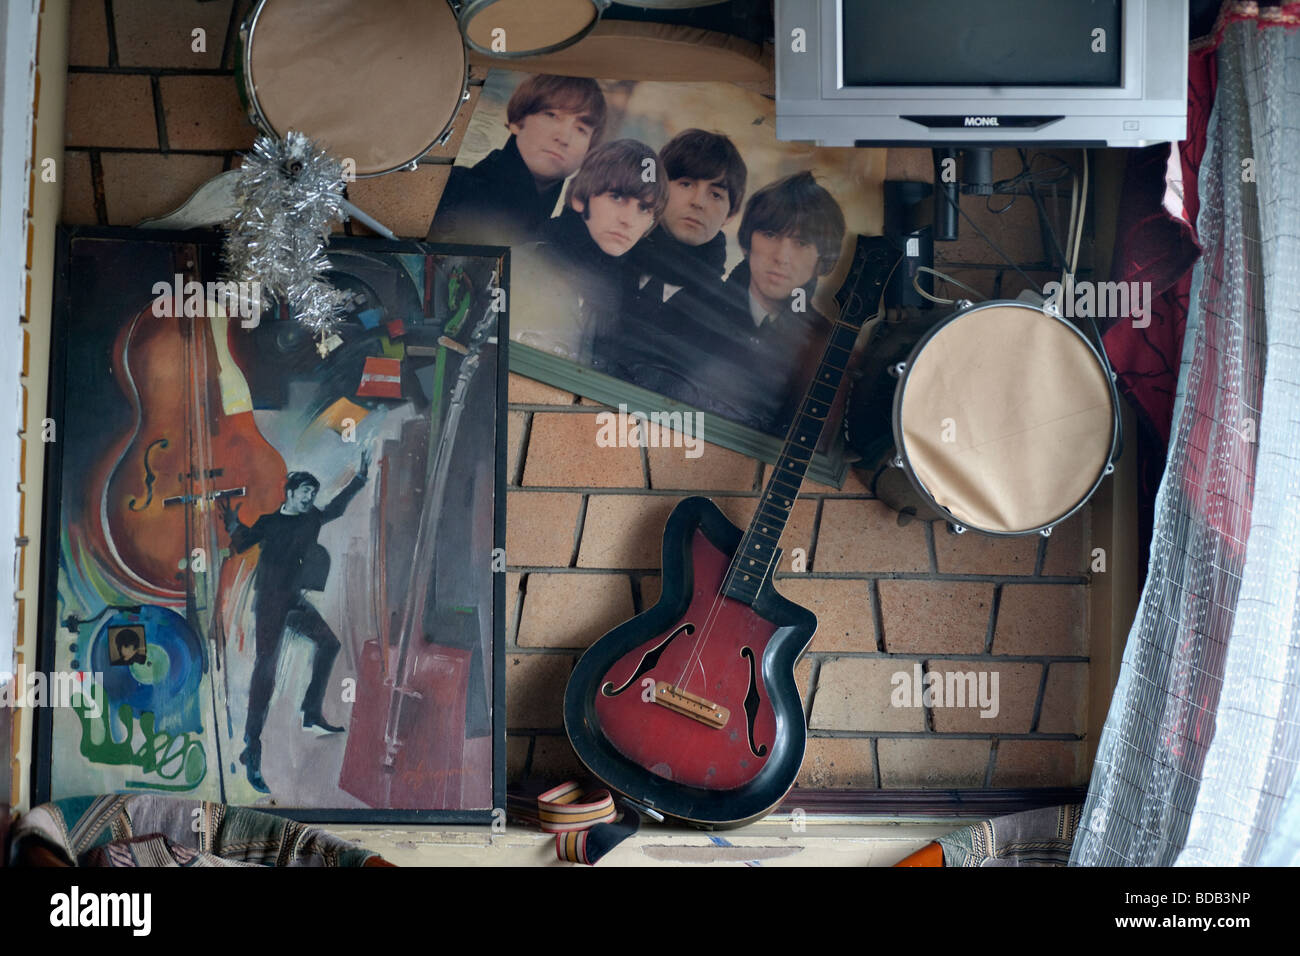 Amusing tribute to the Beatles in a bar, Ulaan Baatar, Mongolia - Stock Image